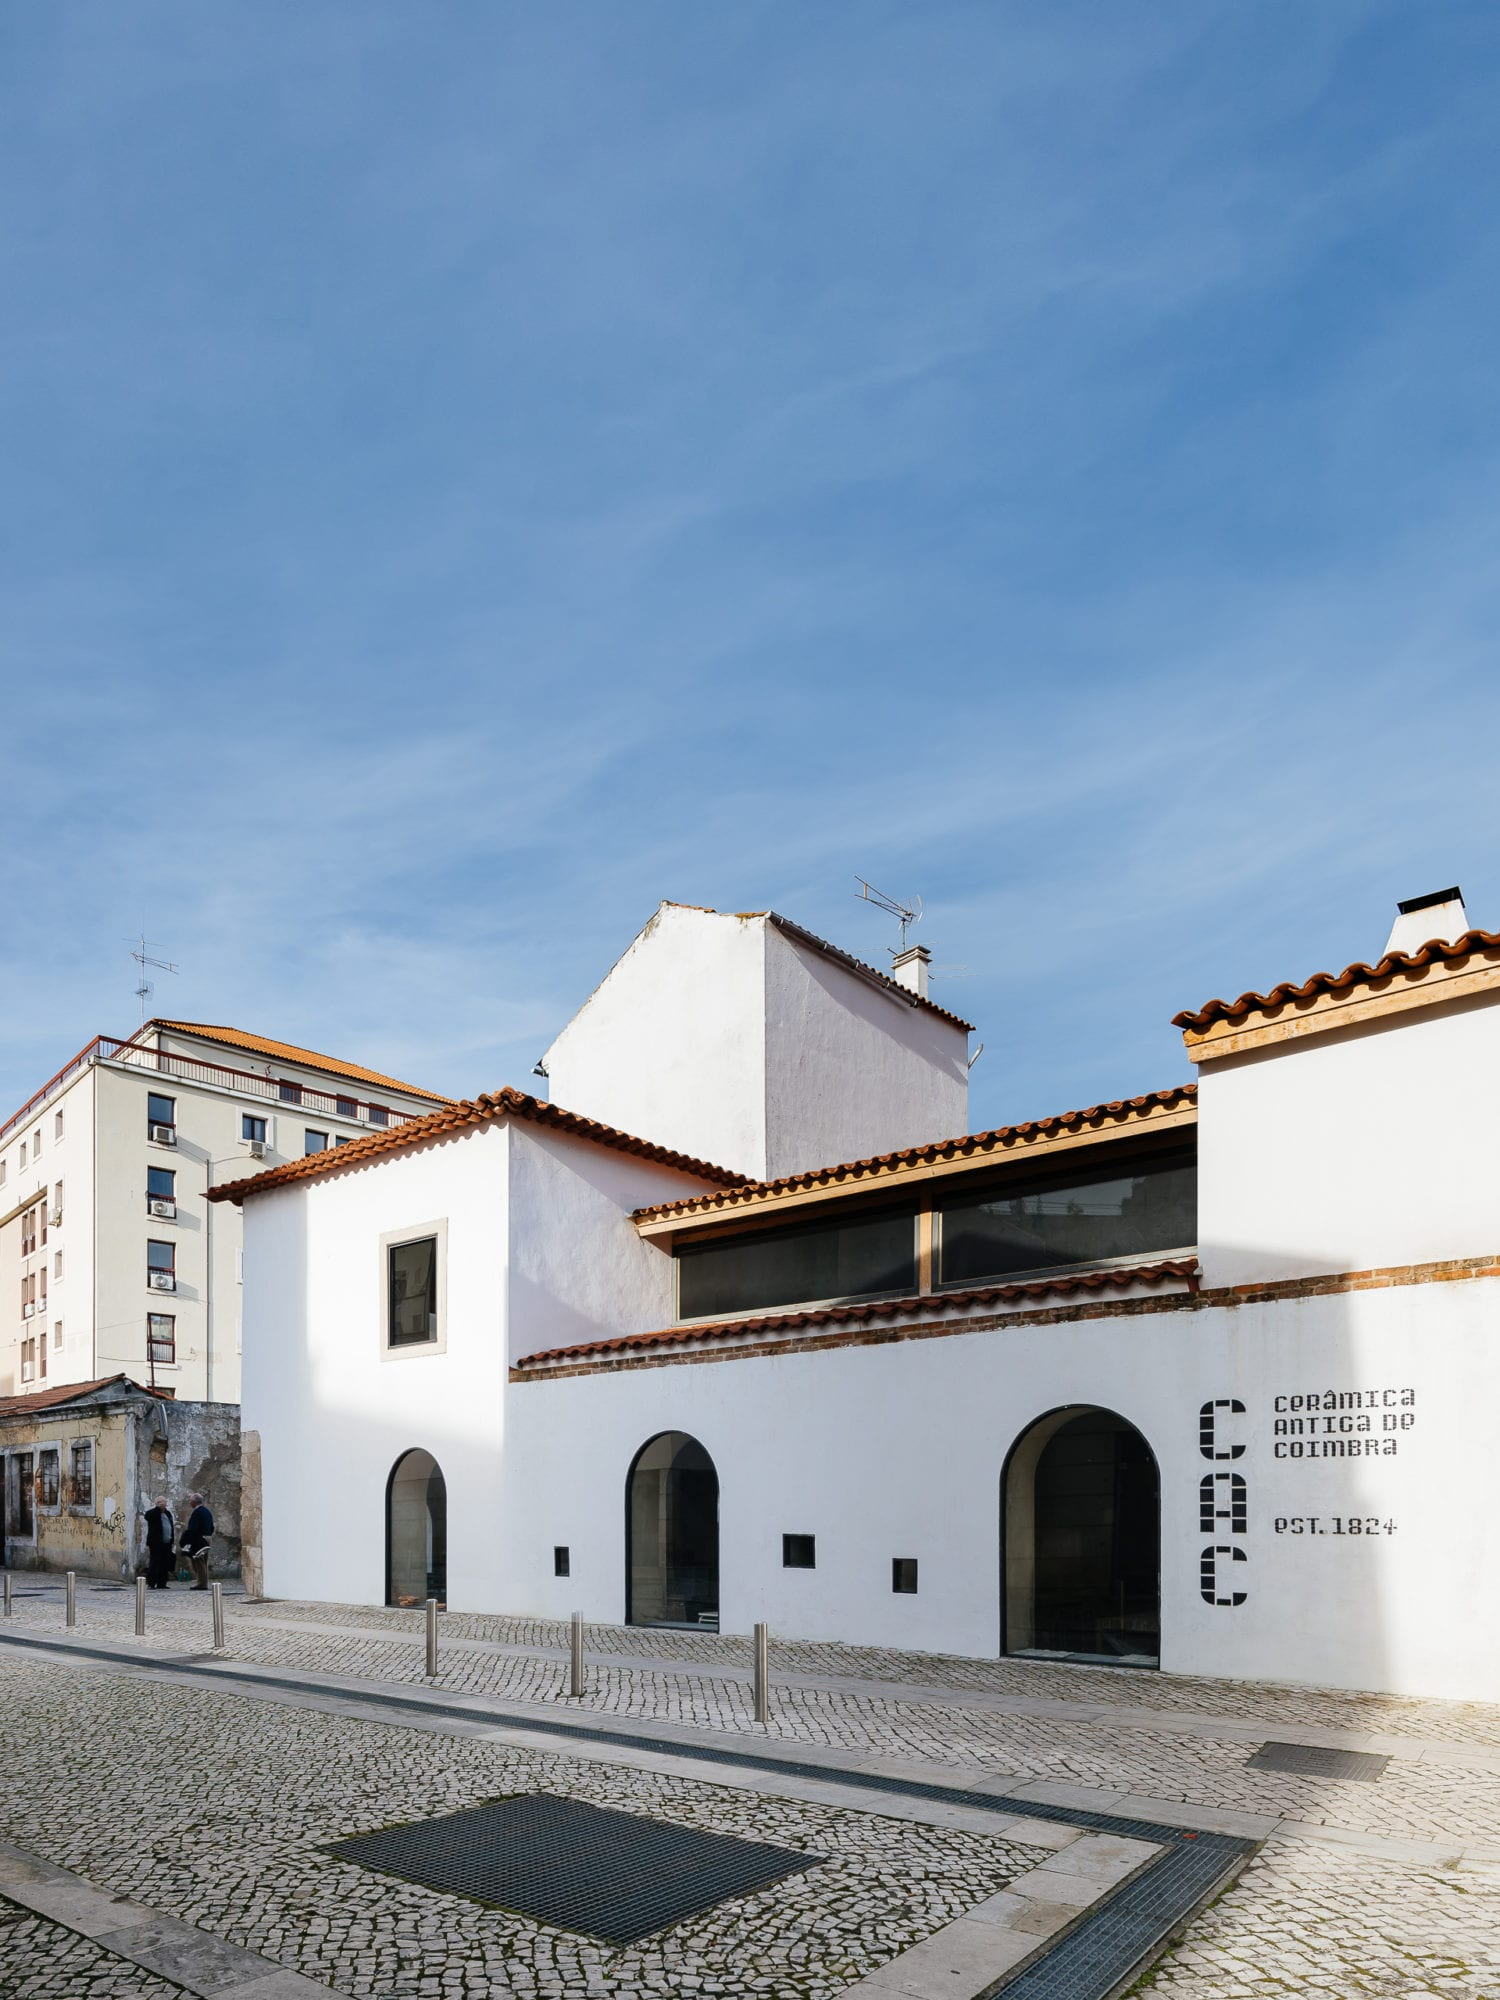 Luisa Bebiano & Atelier do Corvo's Renovation of the Old Ceramic Society of Coimbra 18th Century Building | Yellowtrace